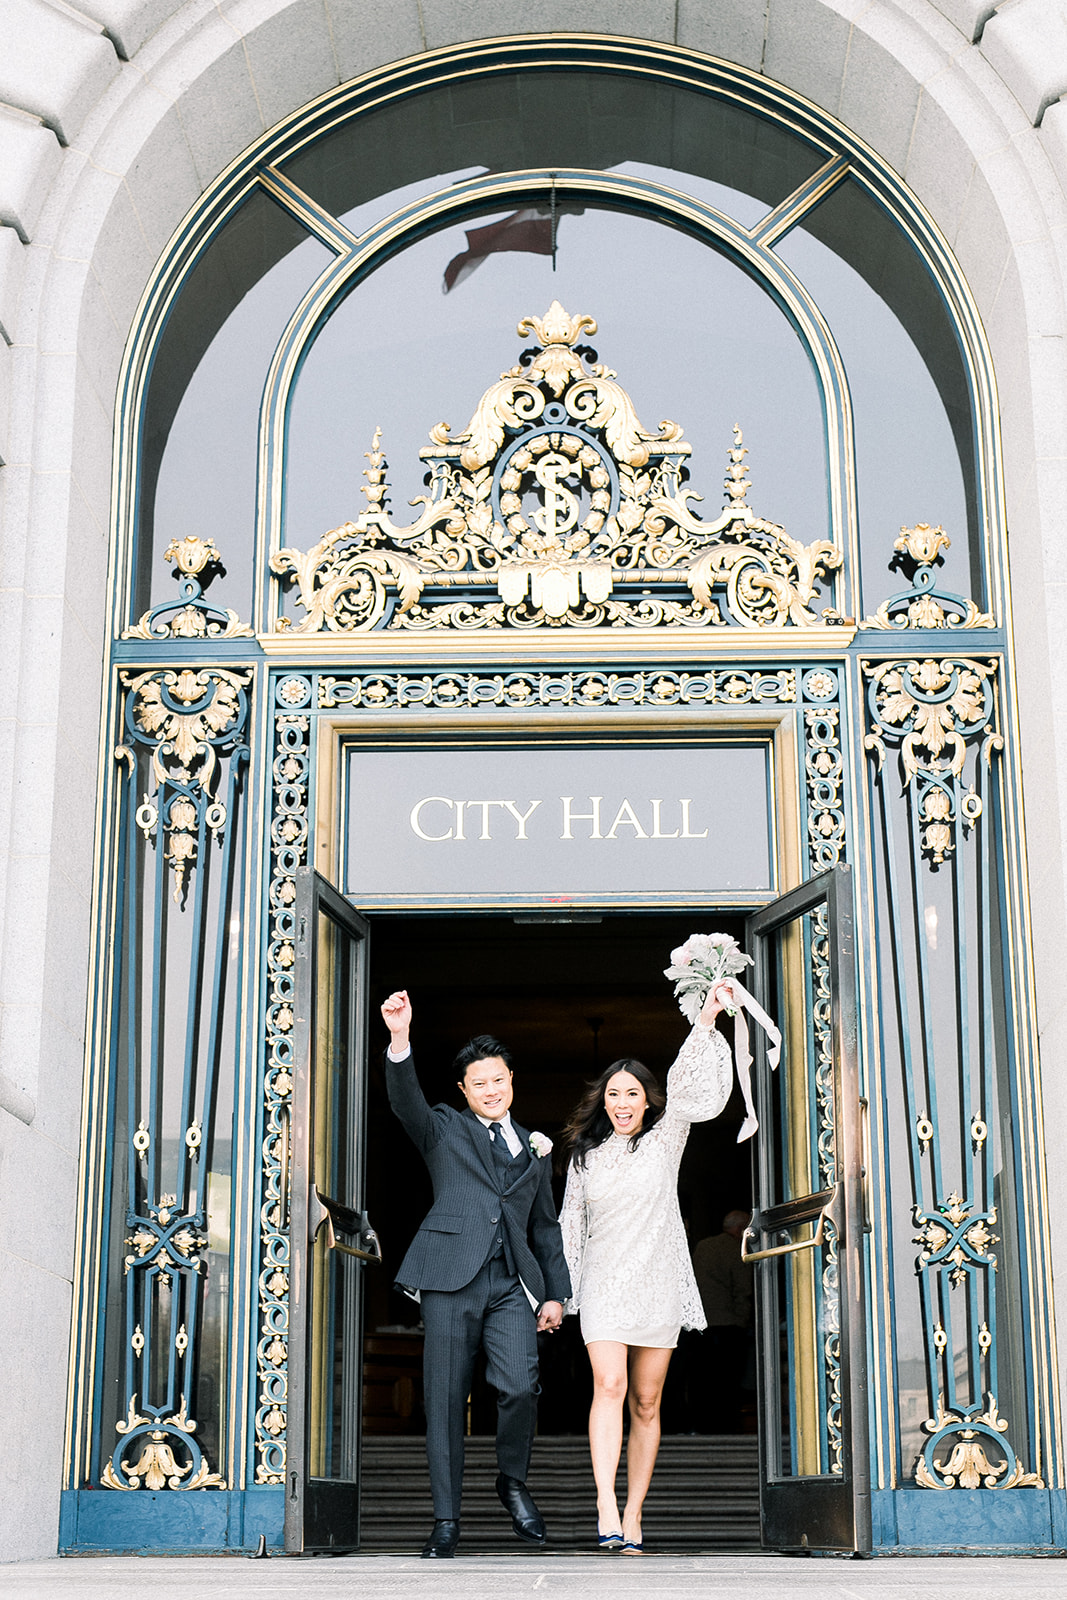 CIVIL-CEREMONY-SF-CITY-HALL-WEDDING-PHAM (239).jpg